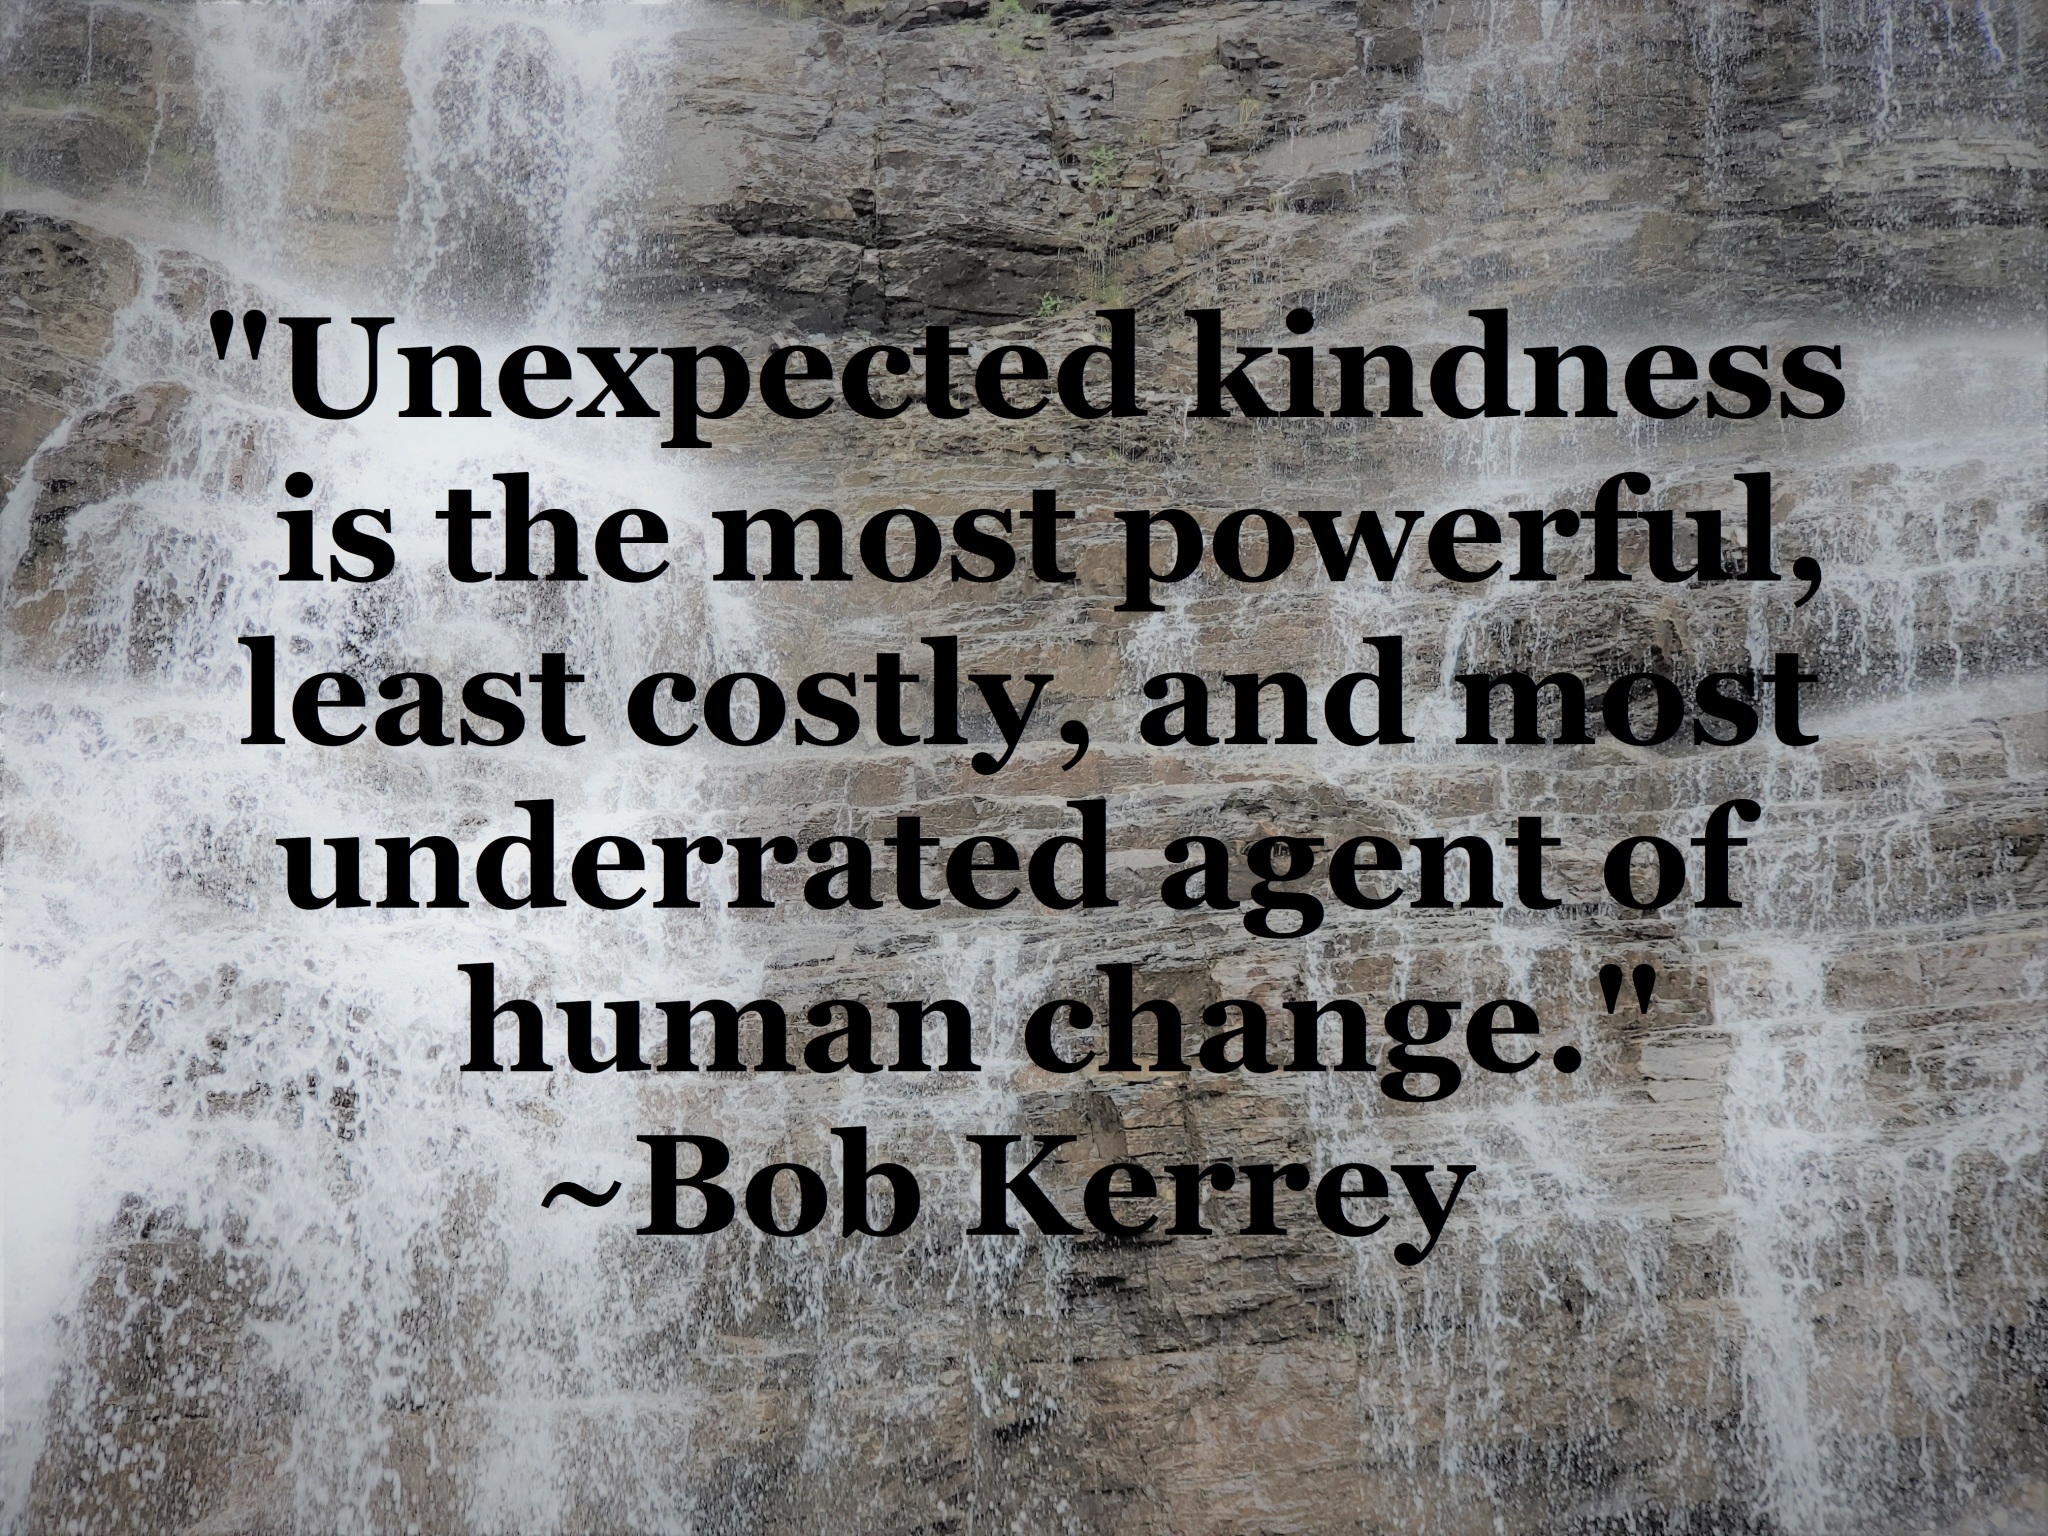 Bob Kerrey - Kindness is powerful